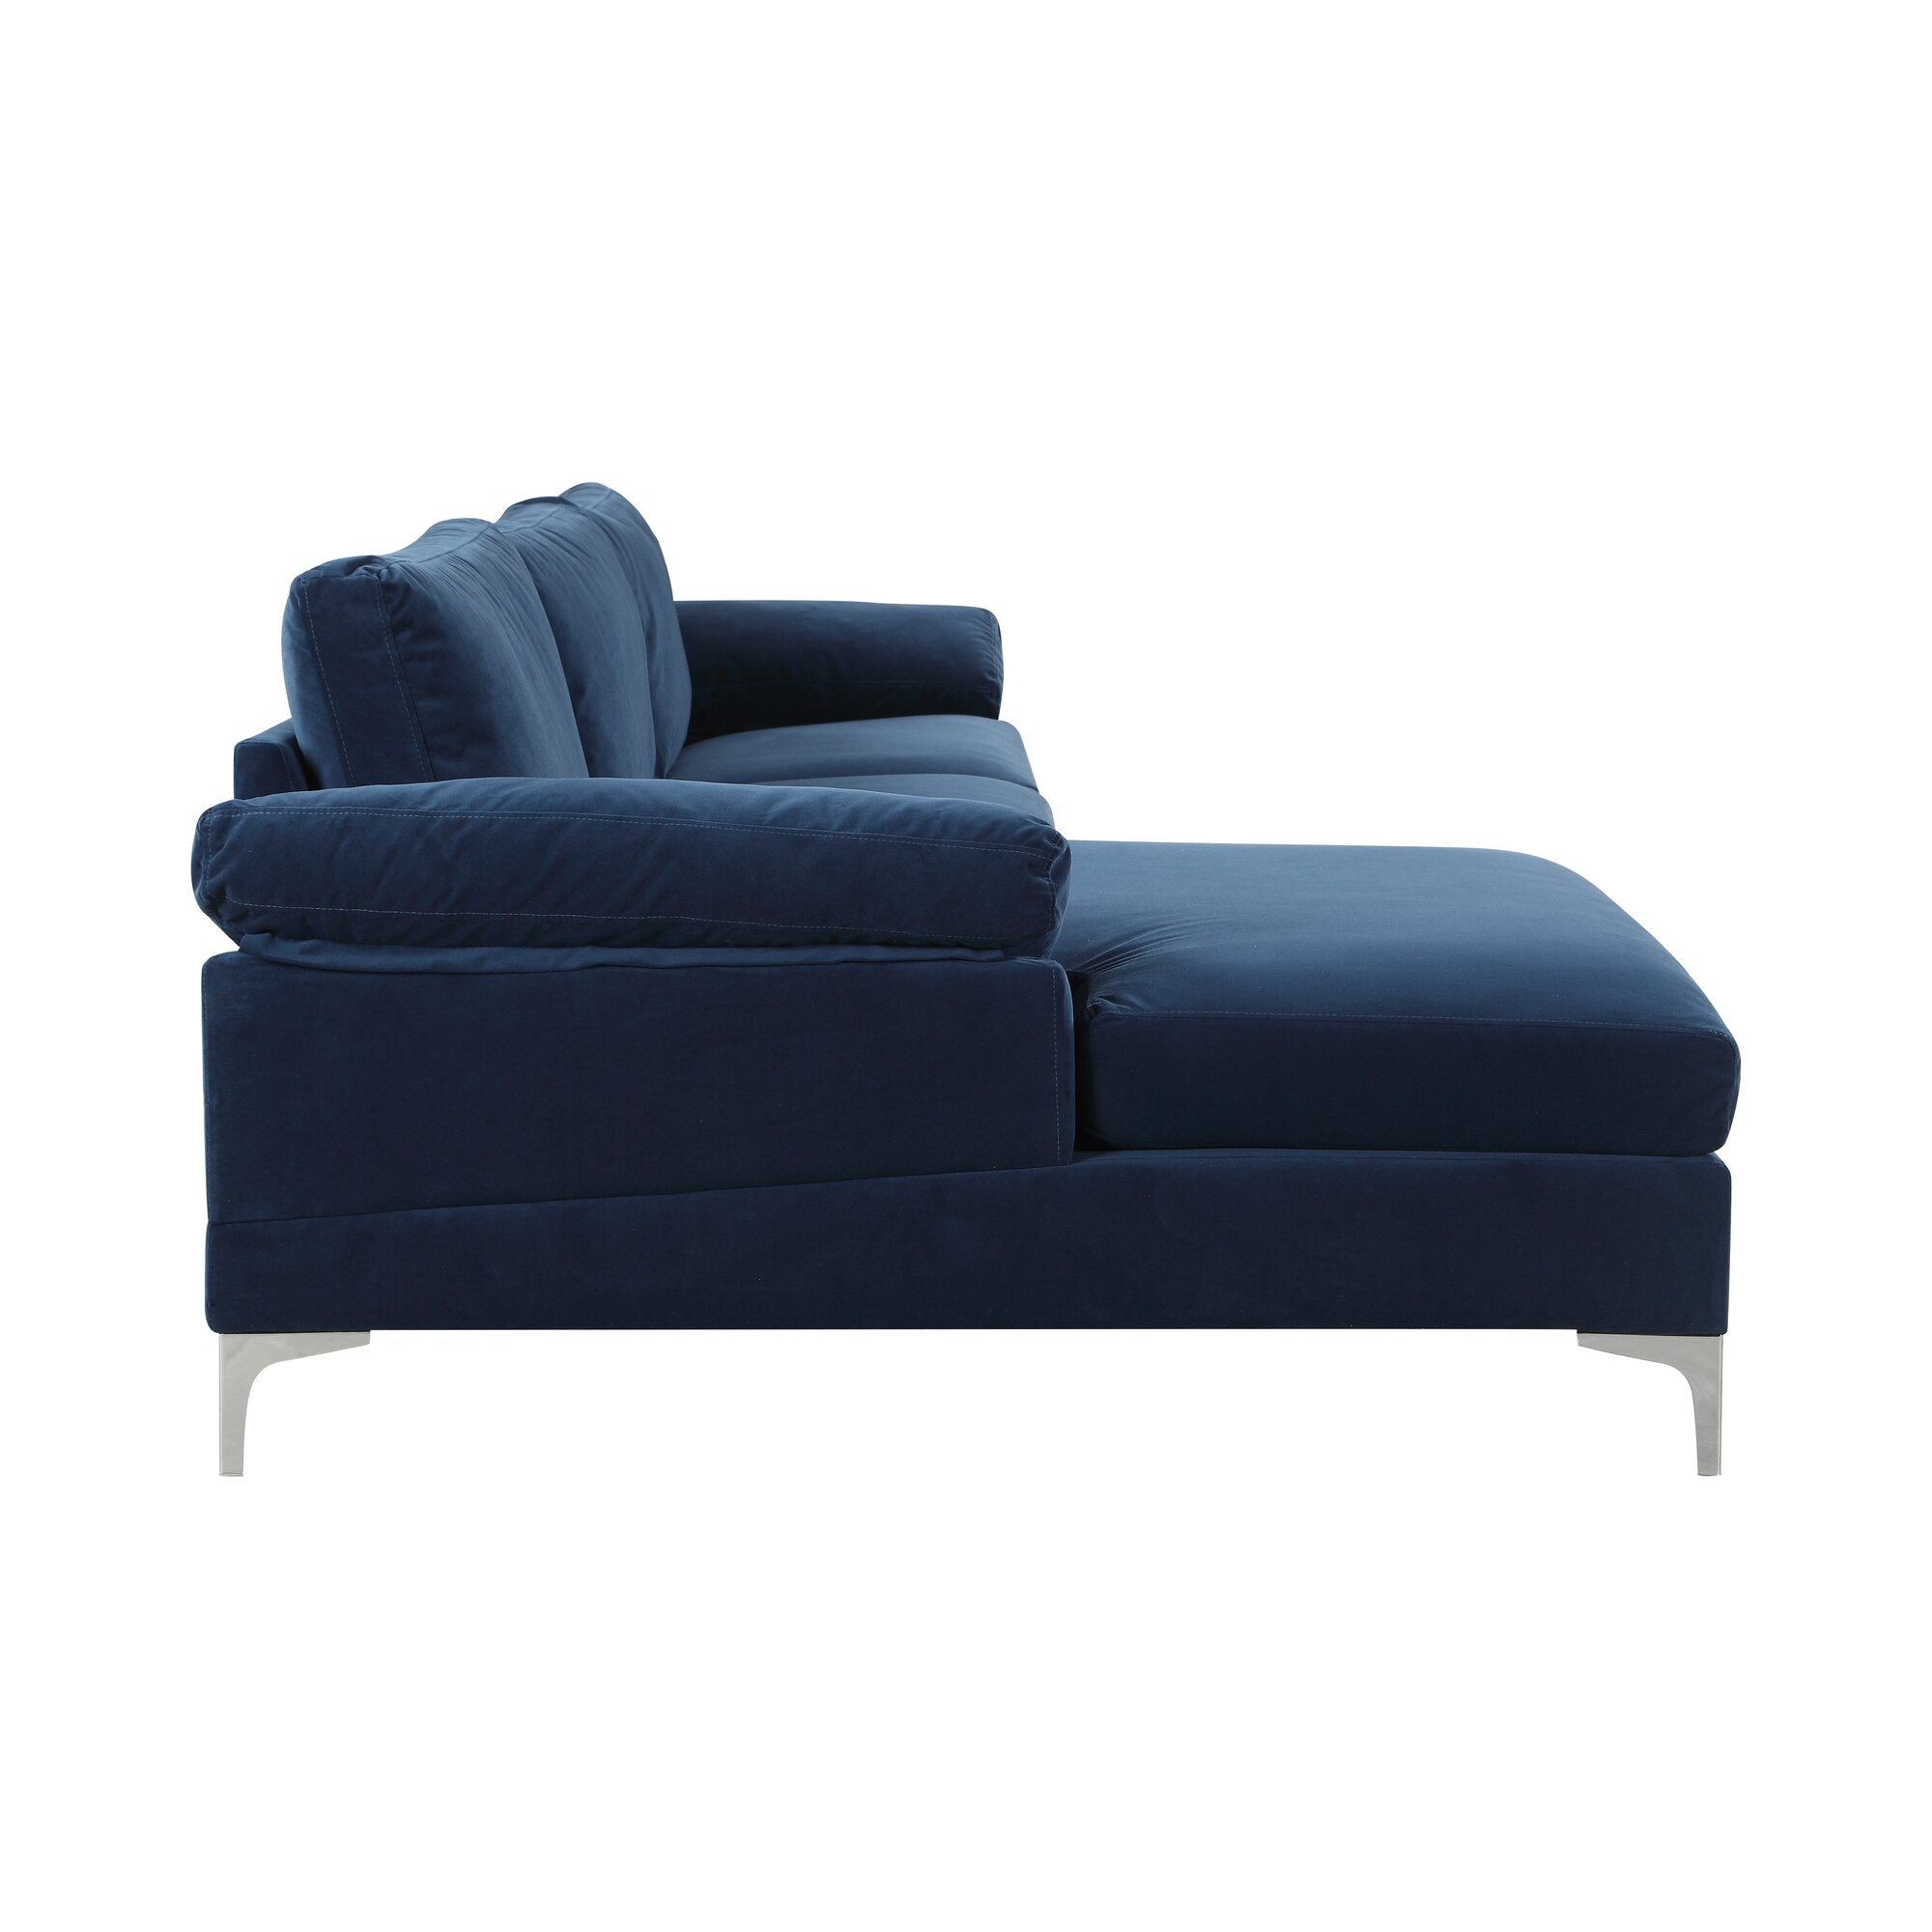 kailey modern velvet fabric sectional sofa with chaise lounge  - kailey modern velvet fabric sectional sofa with chaise lounge